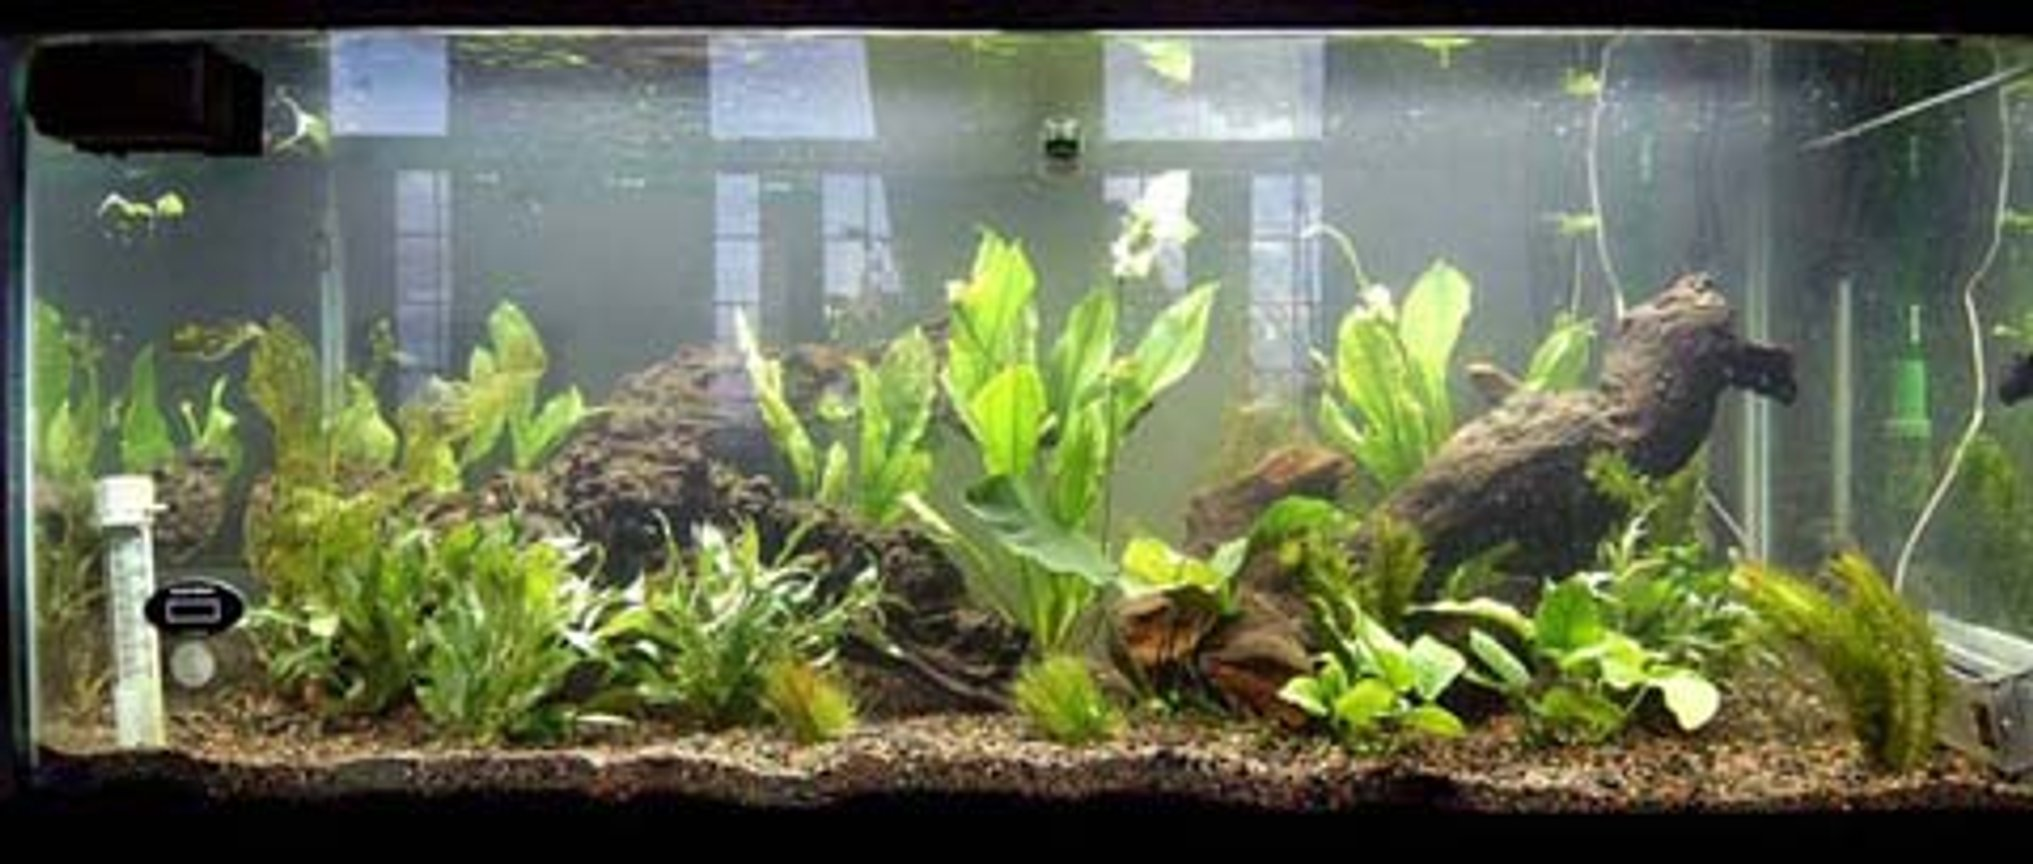 75 gallons planted tank (mostly live plants and fish) - 75 Galllon Planted 5 Dwarf Hairgrass. 2 Anubias nana 1 Anubias bateri-Large 4 Amazon Sword-Large, Potted 4 Temple Narrow Leaf 4 Anacharis 1 Ruffle Plant-Medium 2 Madagascar Lace 1 Marble Queen Radican